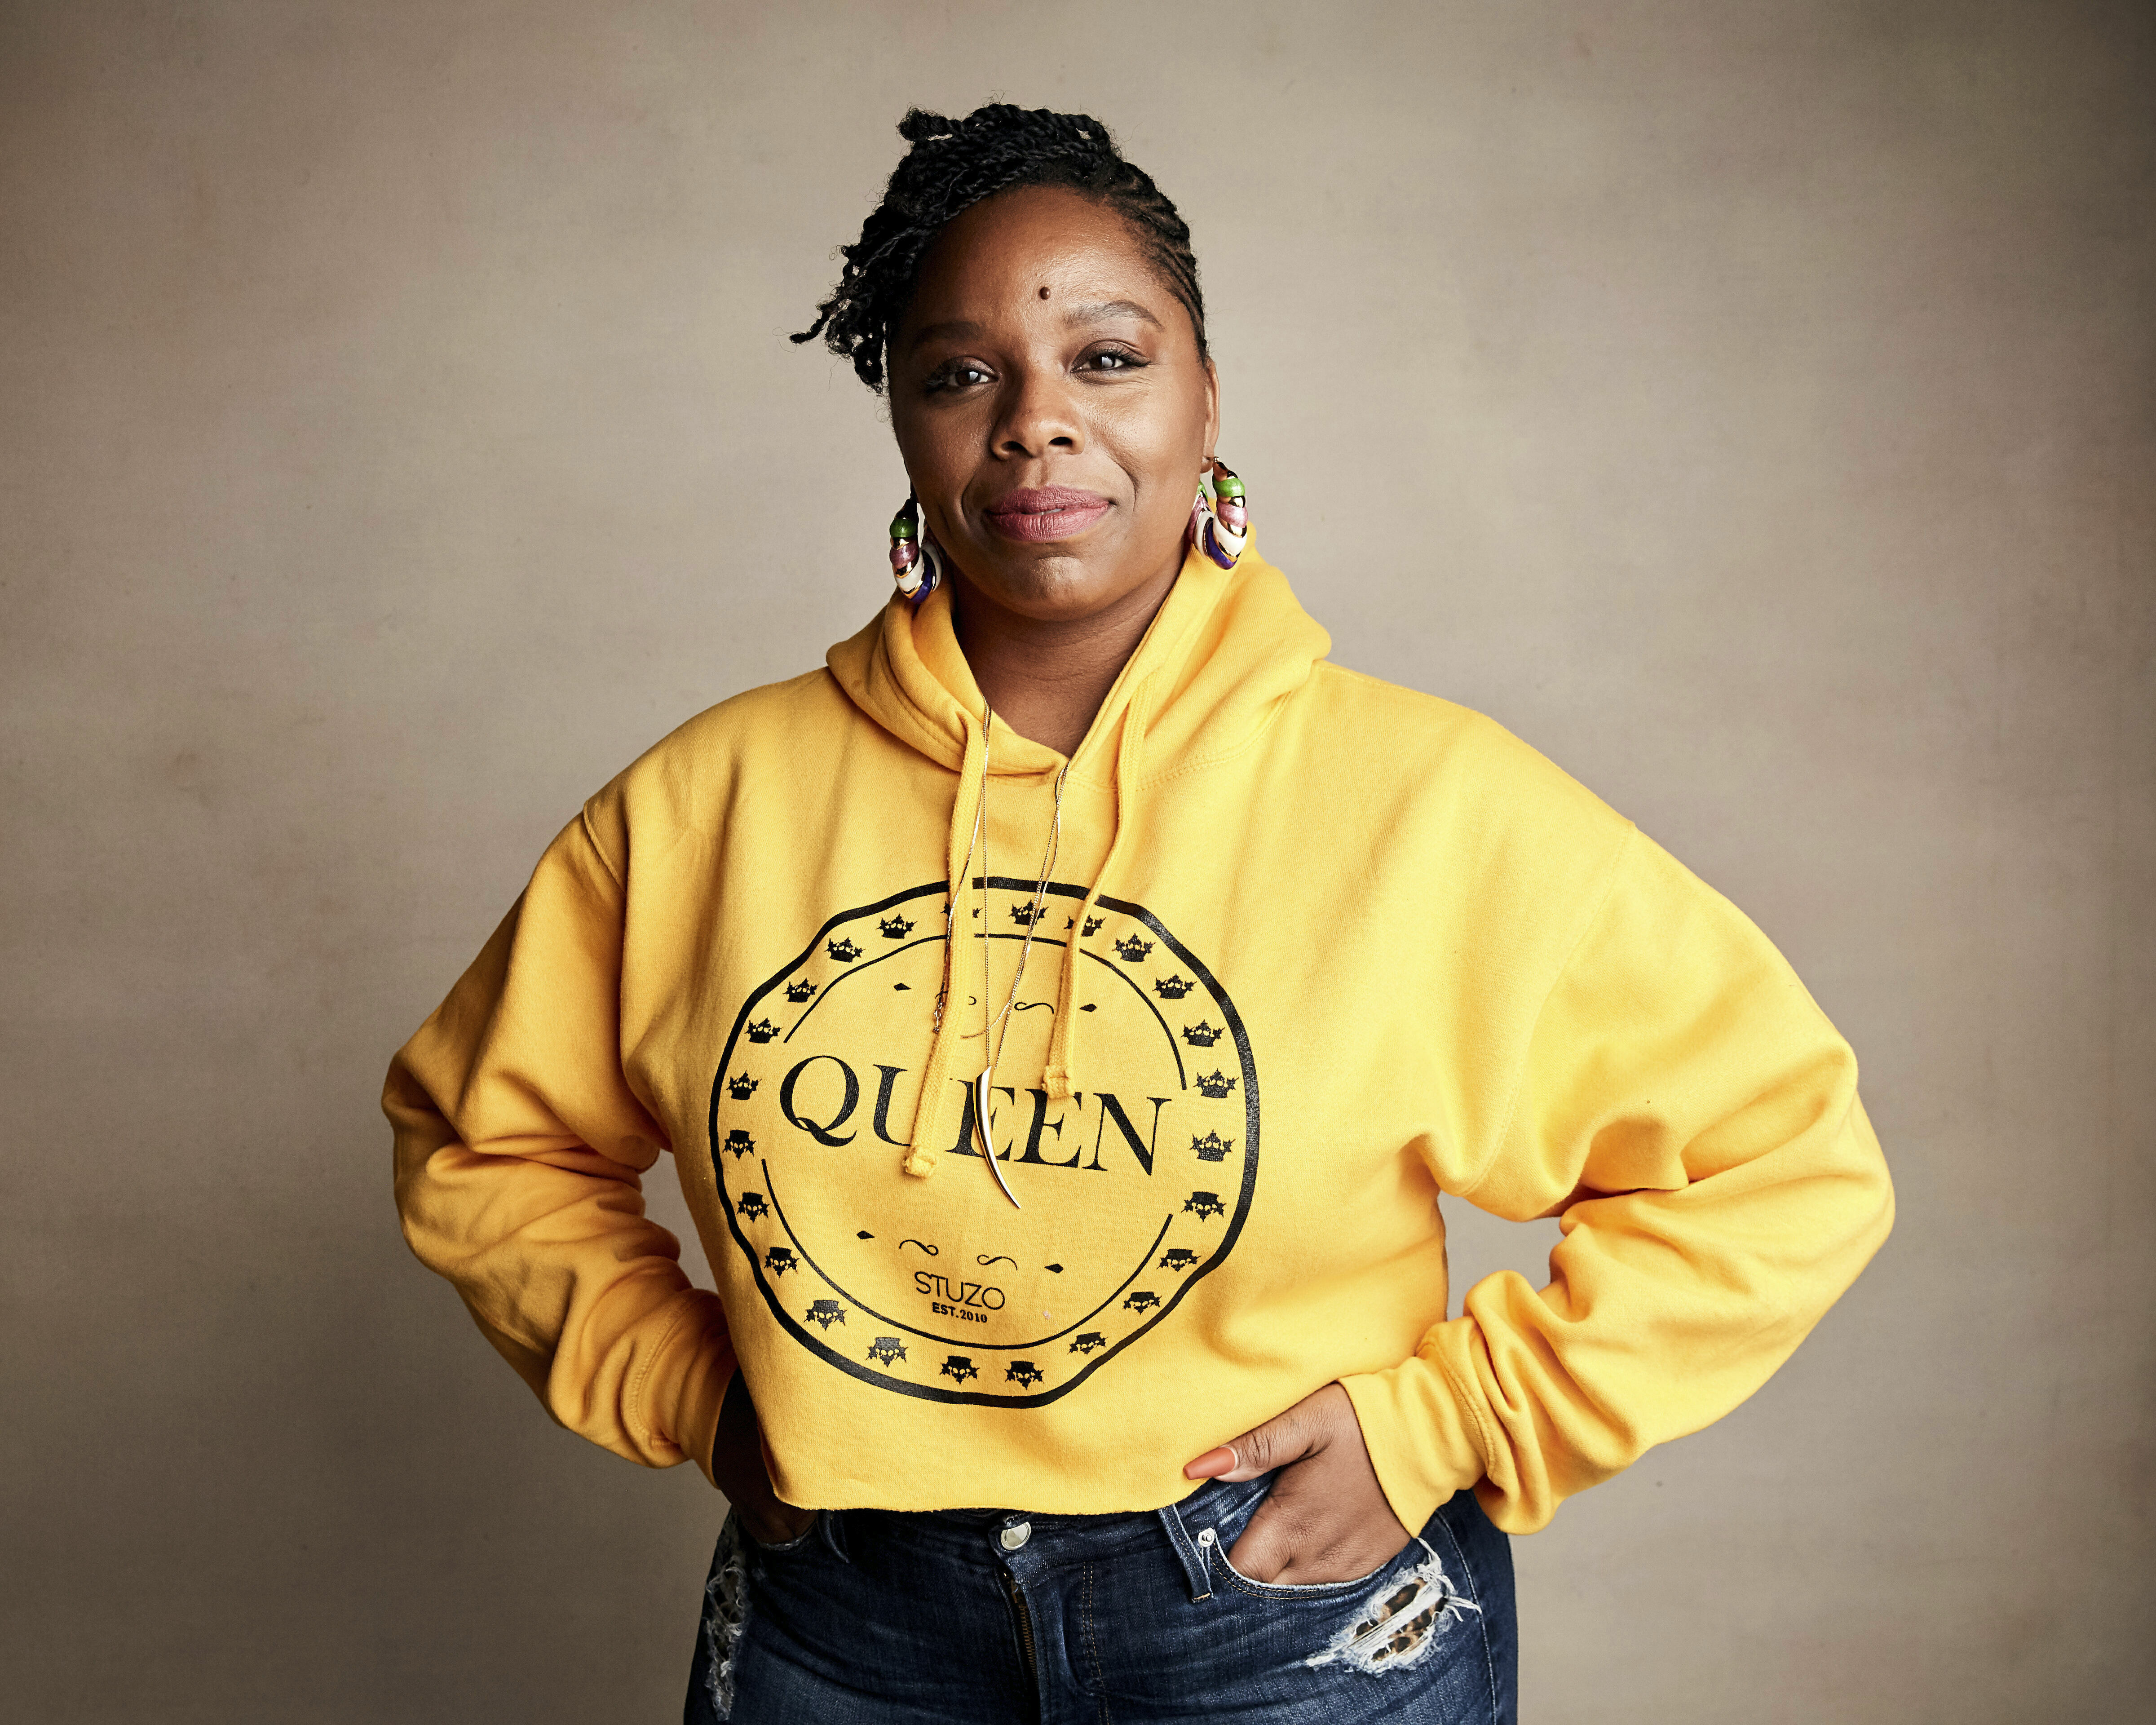 In this Jan. 27, 2019, file photo, Patrisse Cullors poses for a portrait to promote a film during the Sundance Film Festival in Park City, Utah. Cullors, a co-founder of Black Lives Matter, announced Thursday, May 27, 2021, that she is stepping down as executive director of the foundation.